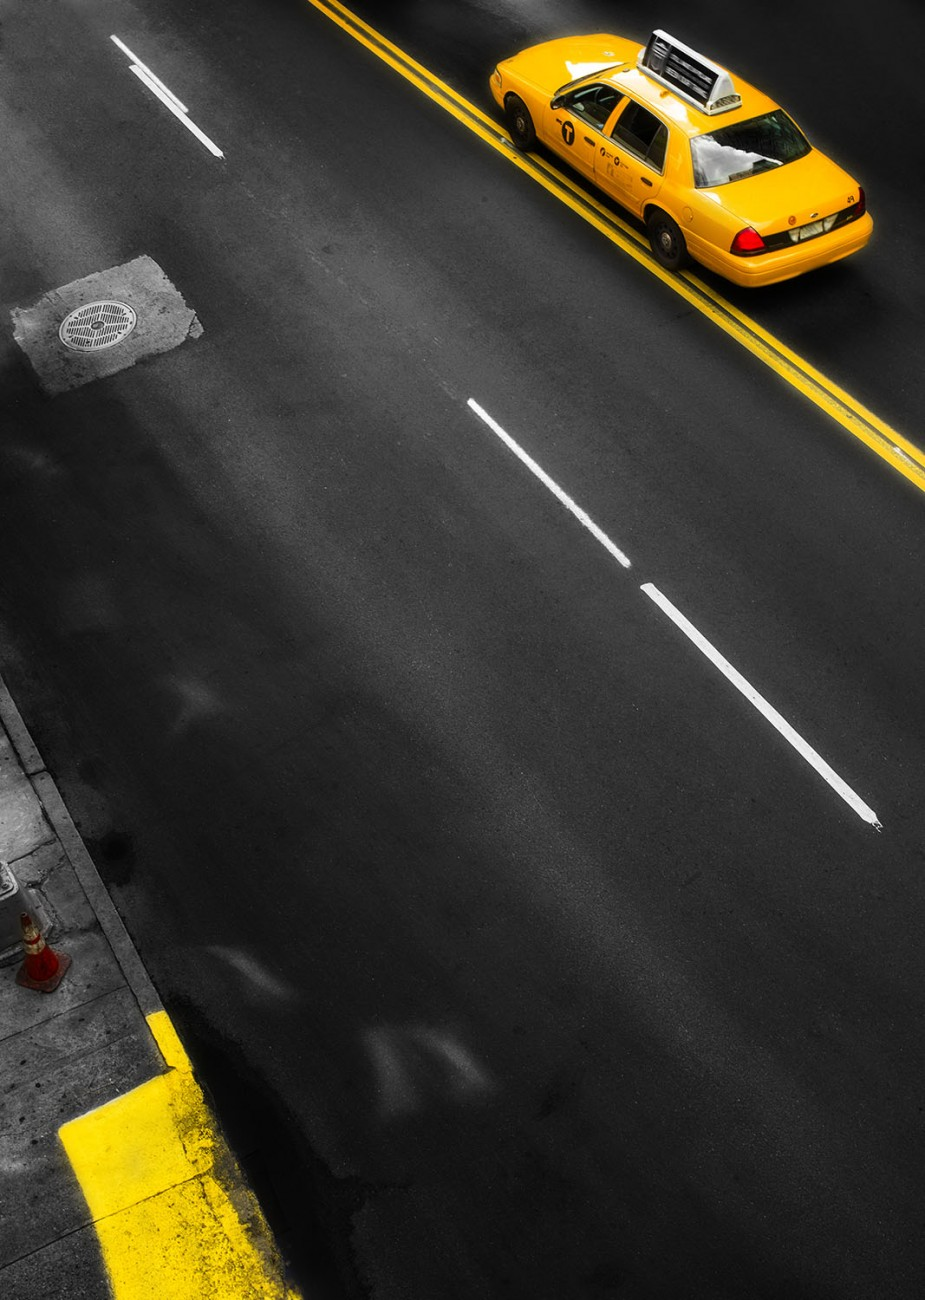 Taxi with double yellow line, NY, 2012